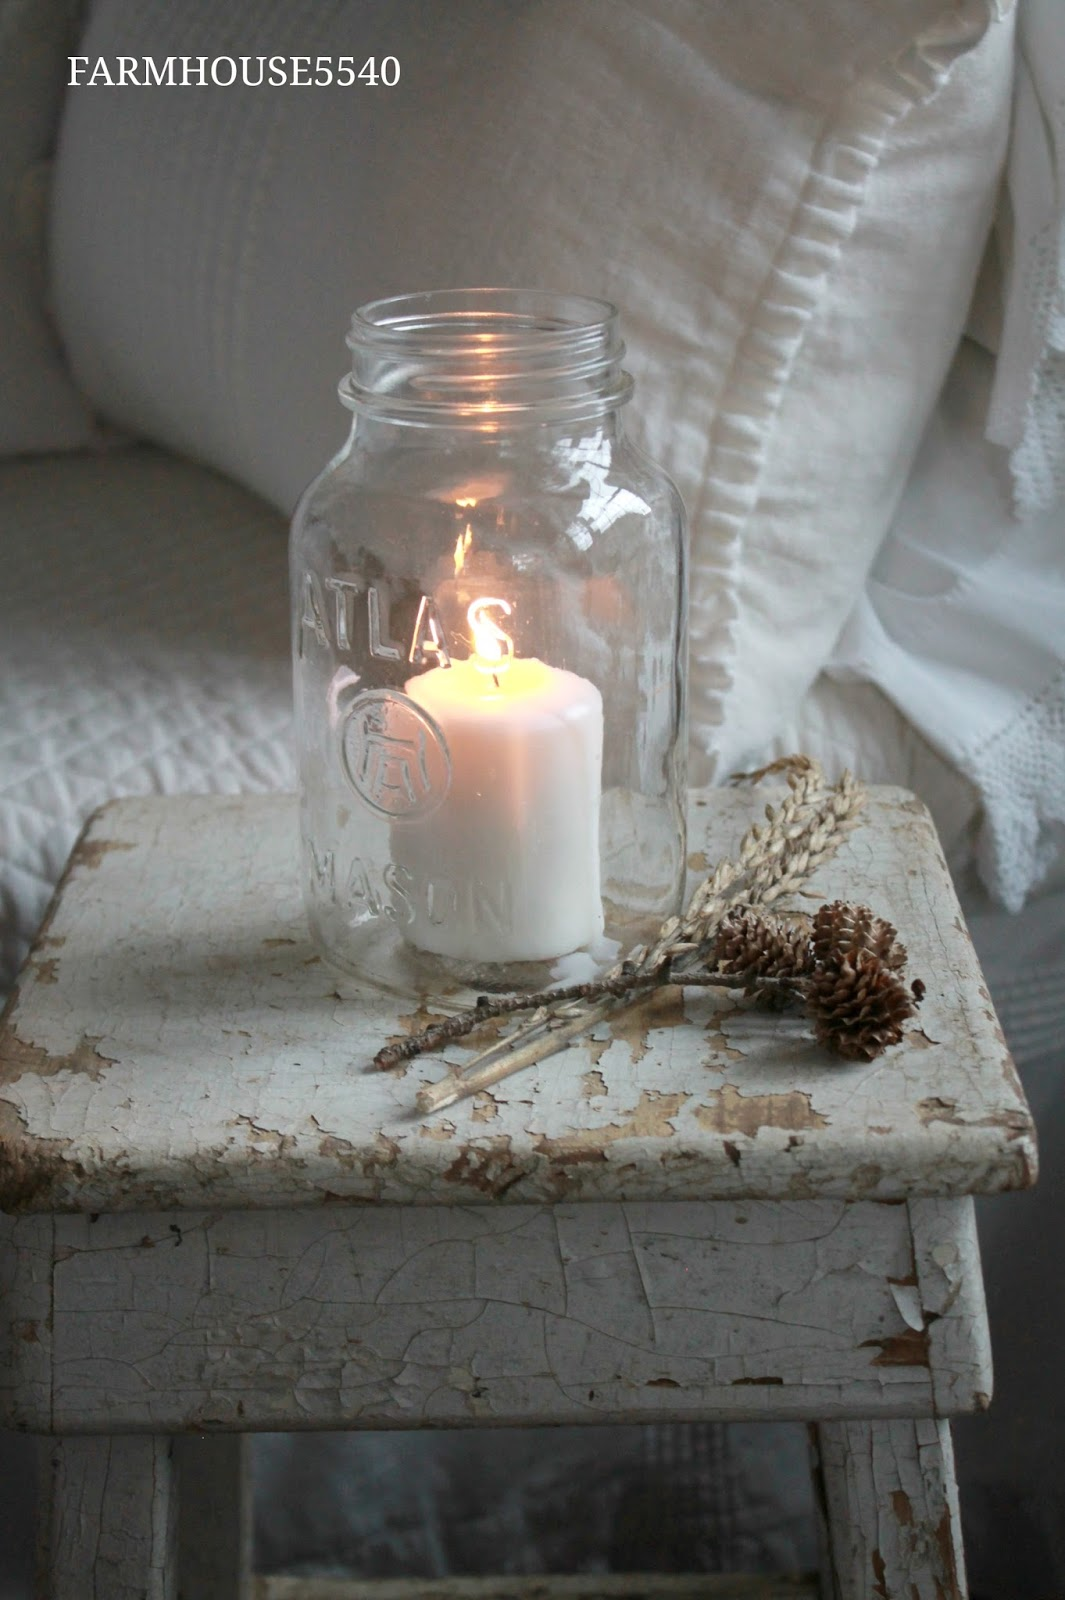 FARMHOUSE 5540 Farmhouse Inspiration Candle Light